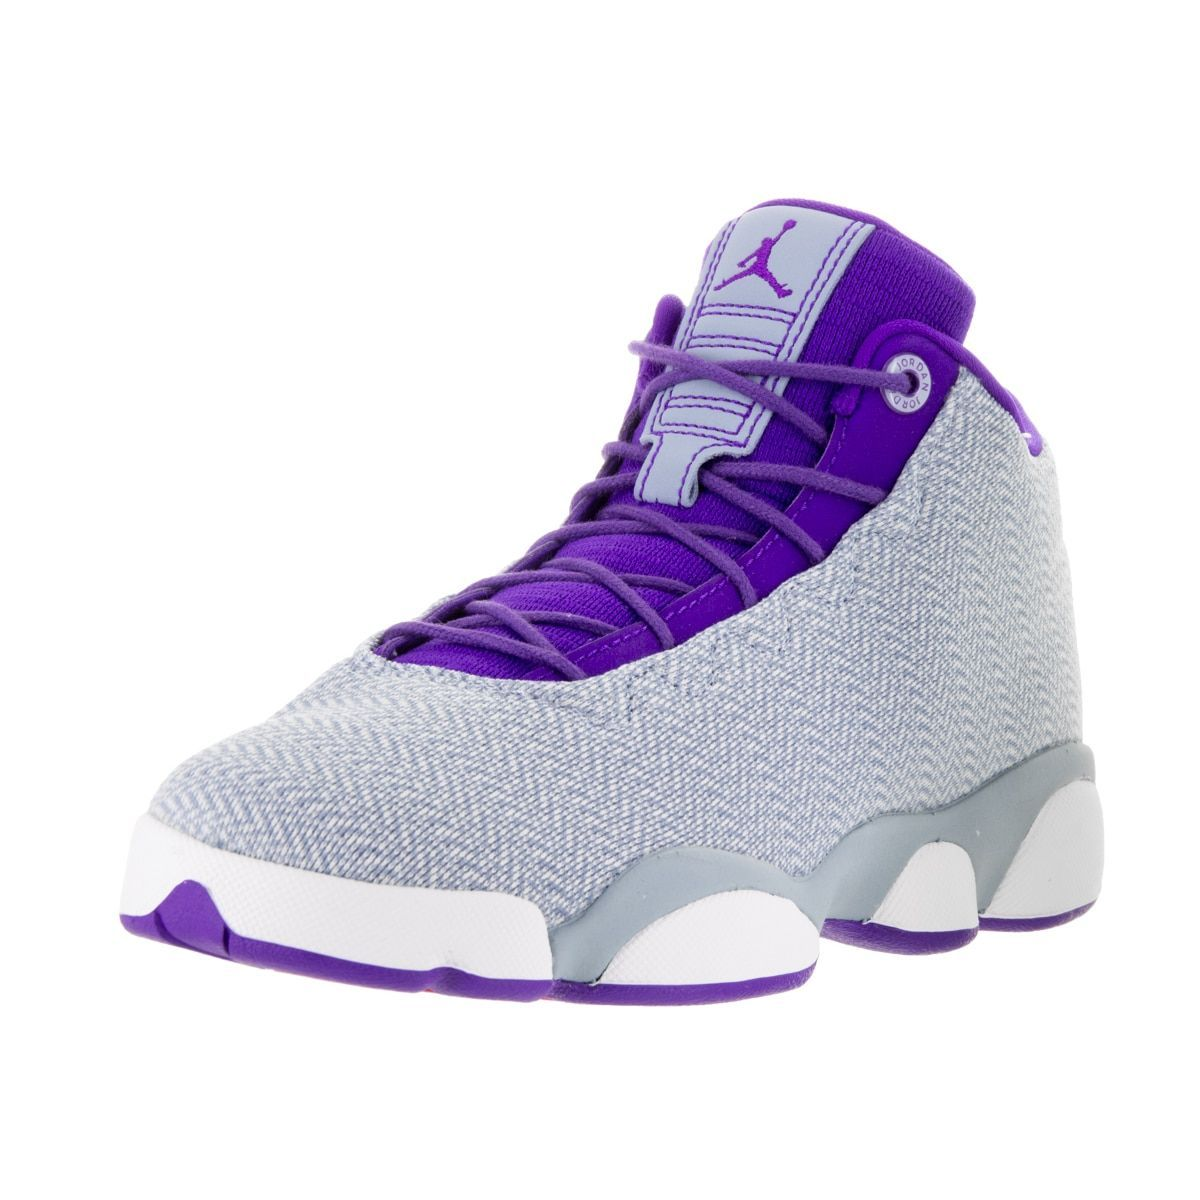 low cost 064da baebb ... get nike jordan kids jordan horizon low gg blue frc purple embr glw  basketball shoe c290b